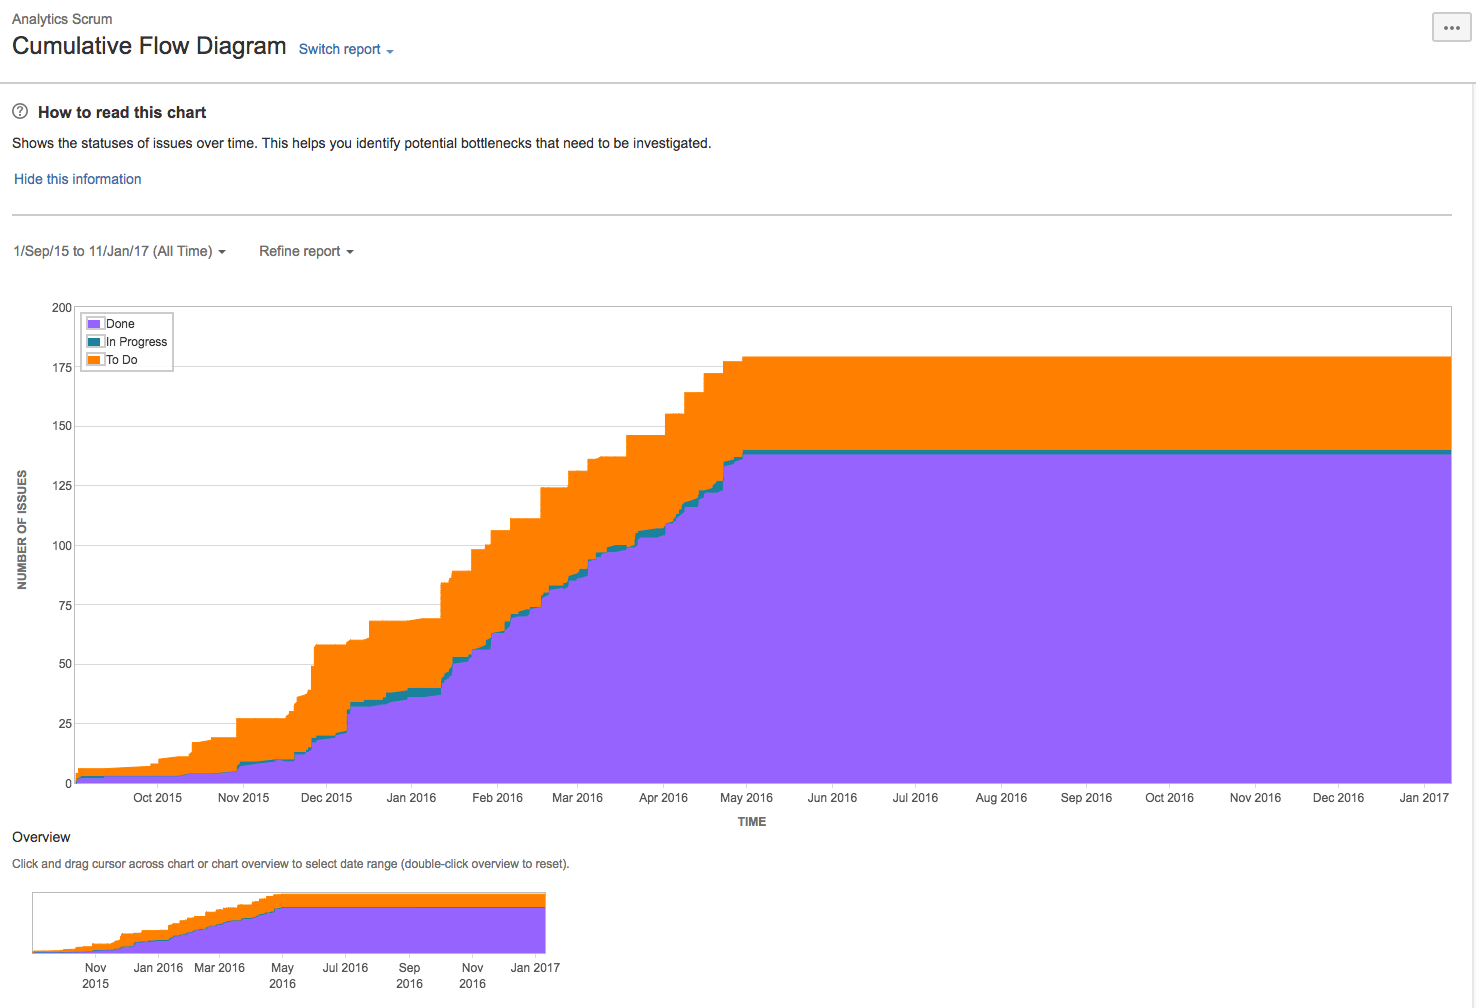 The cumulative flow diagram presents the status of issues over time. Purple = done, green = in progress, orange = to do.